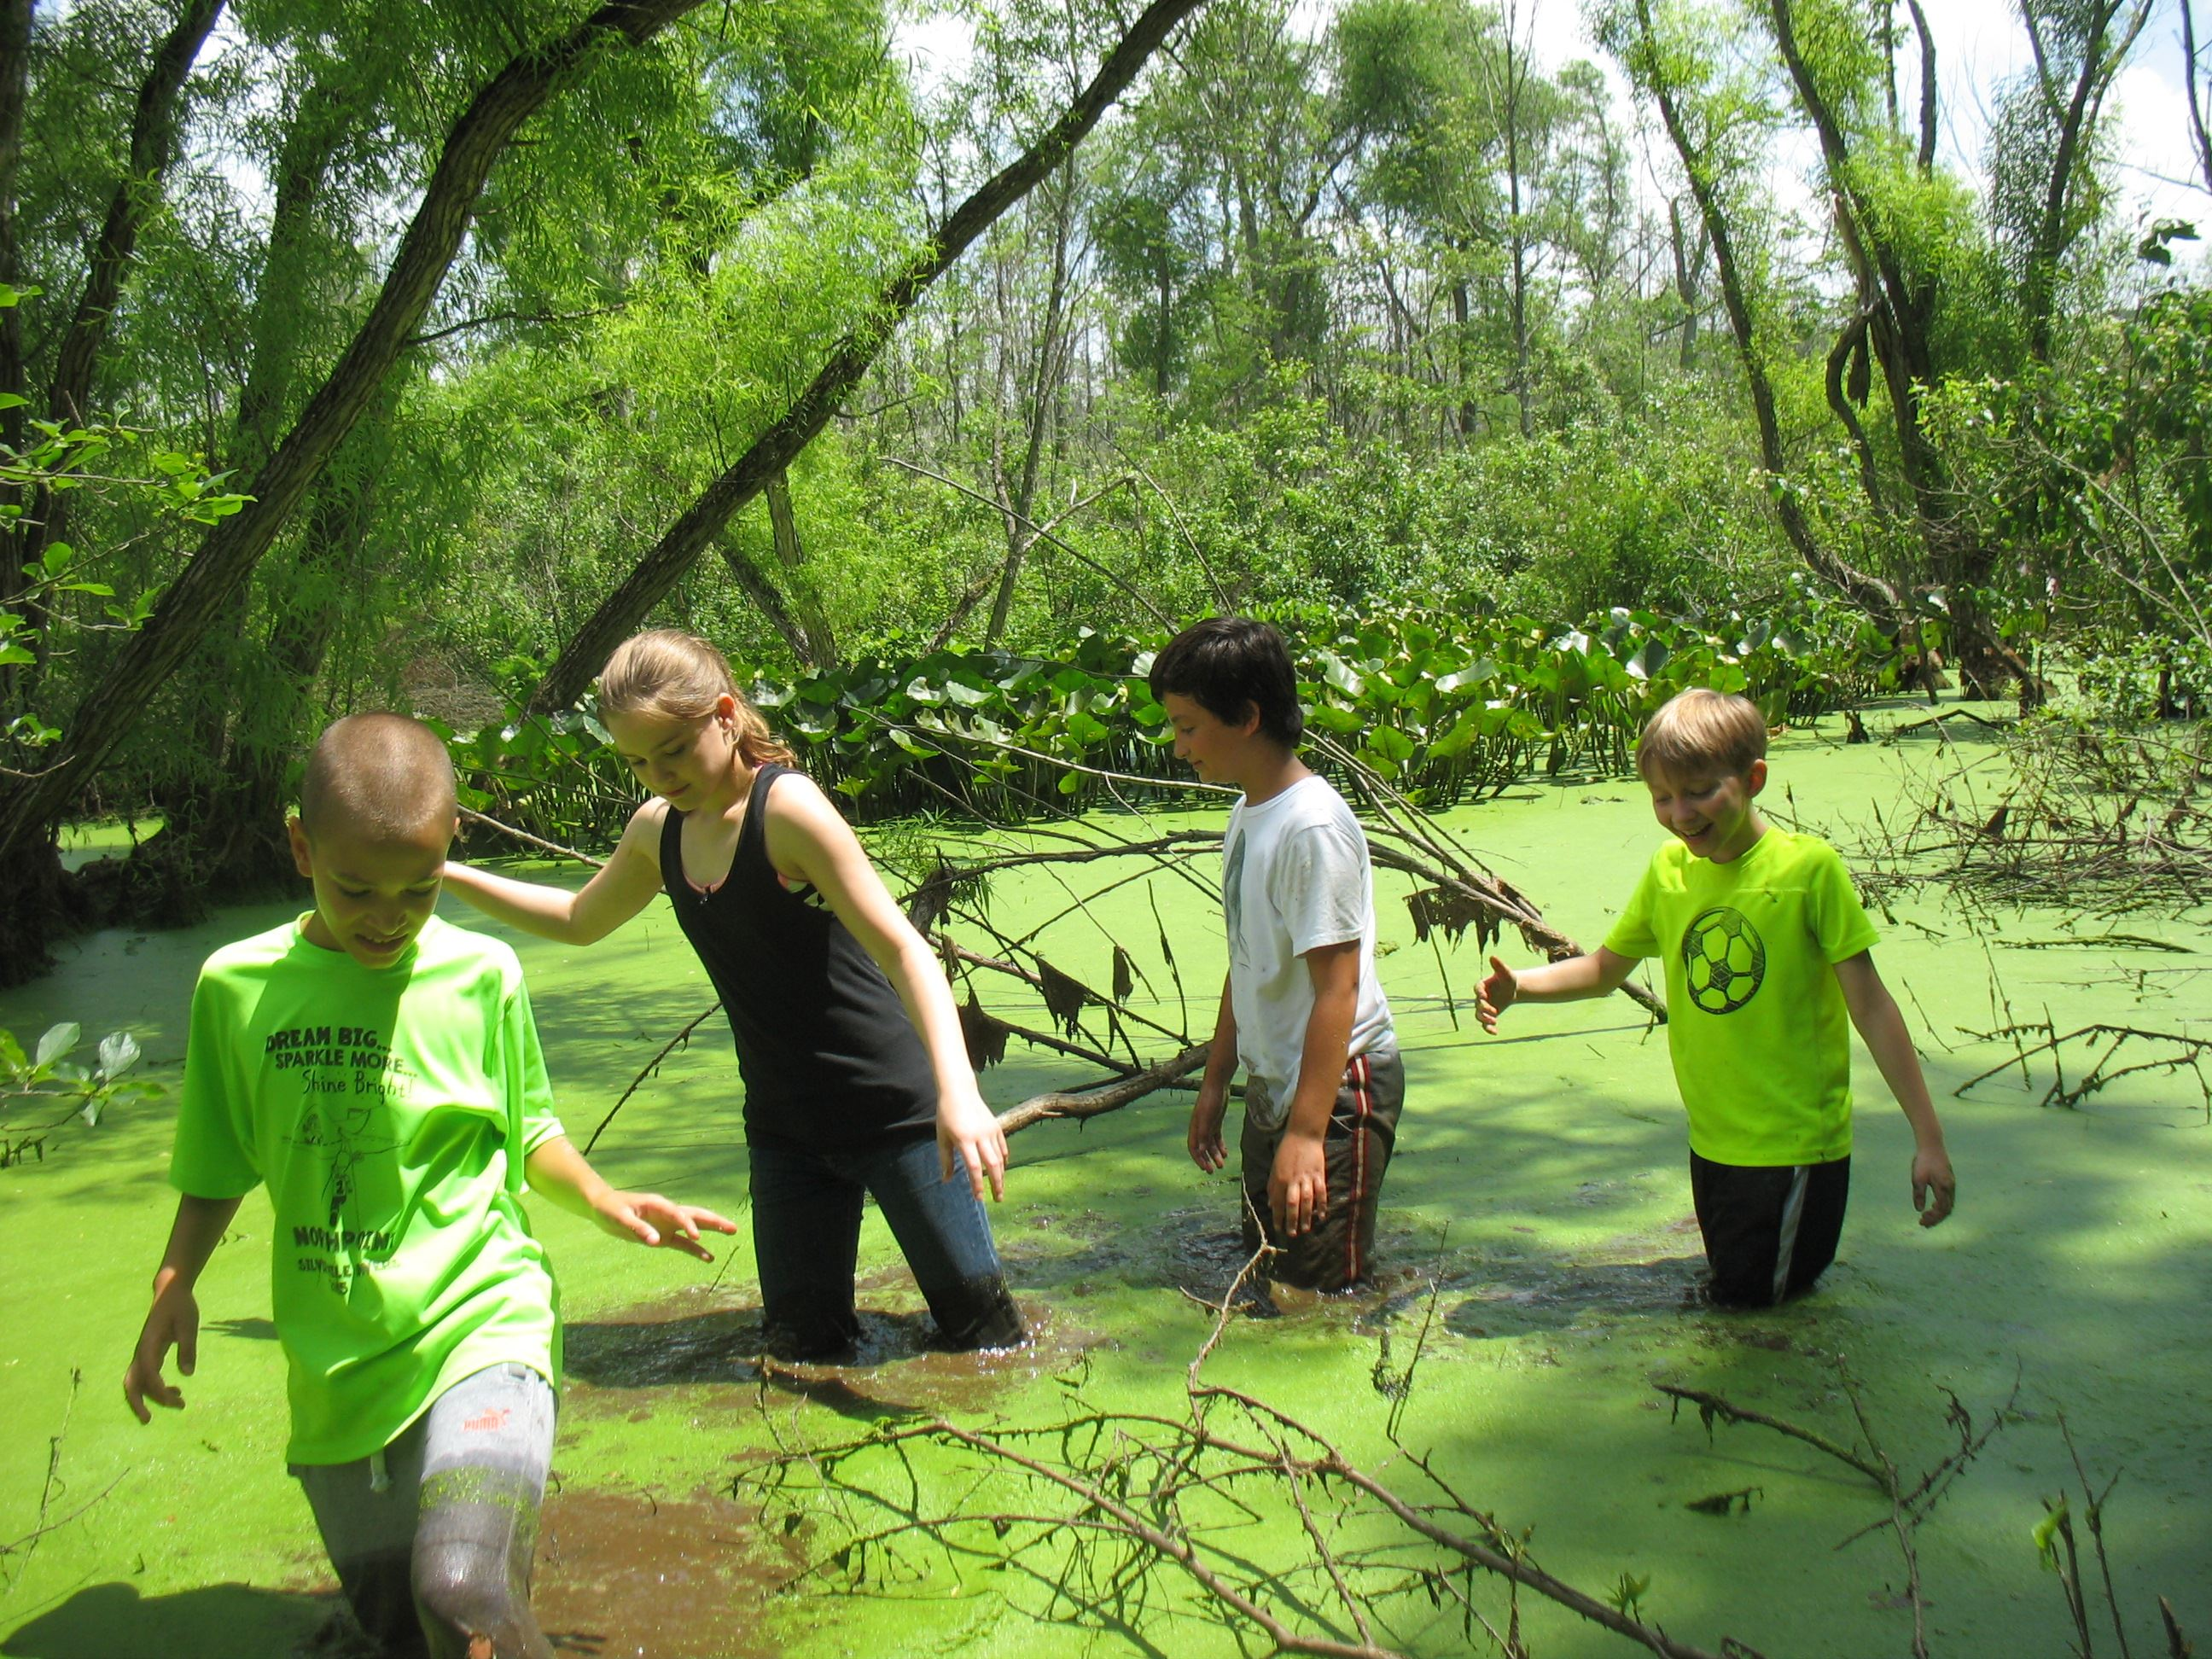 Day Campers do a Swamp Stomp!